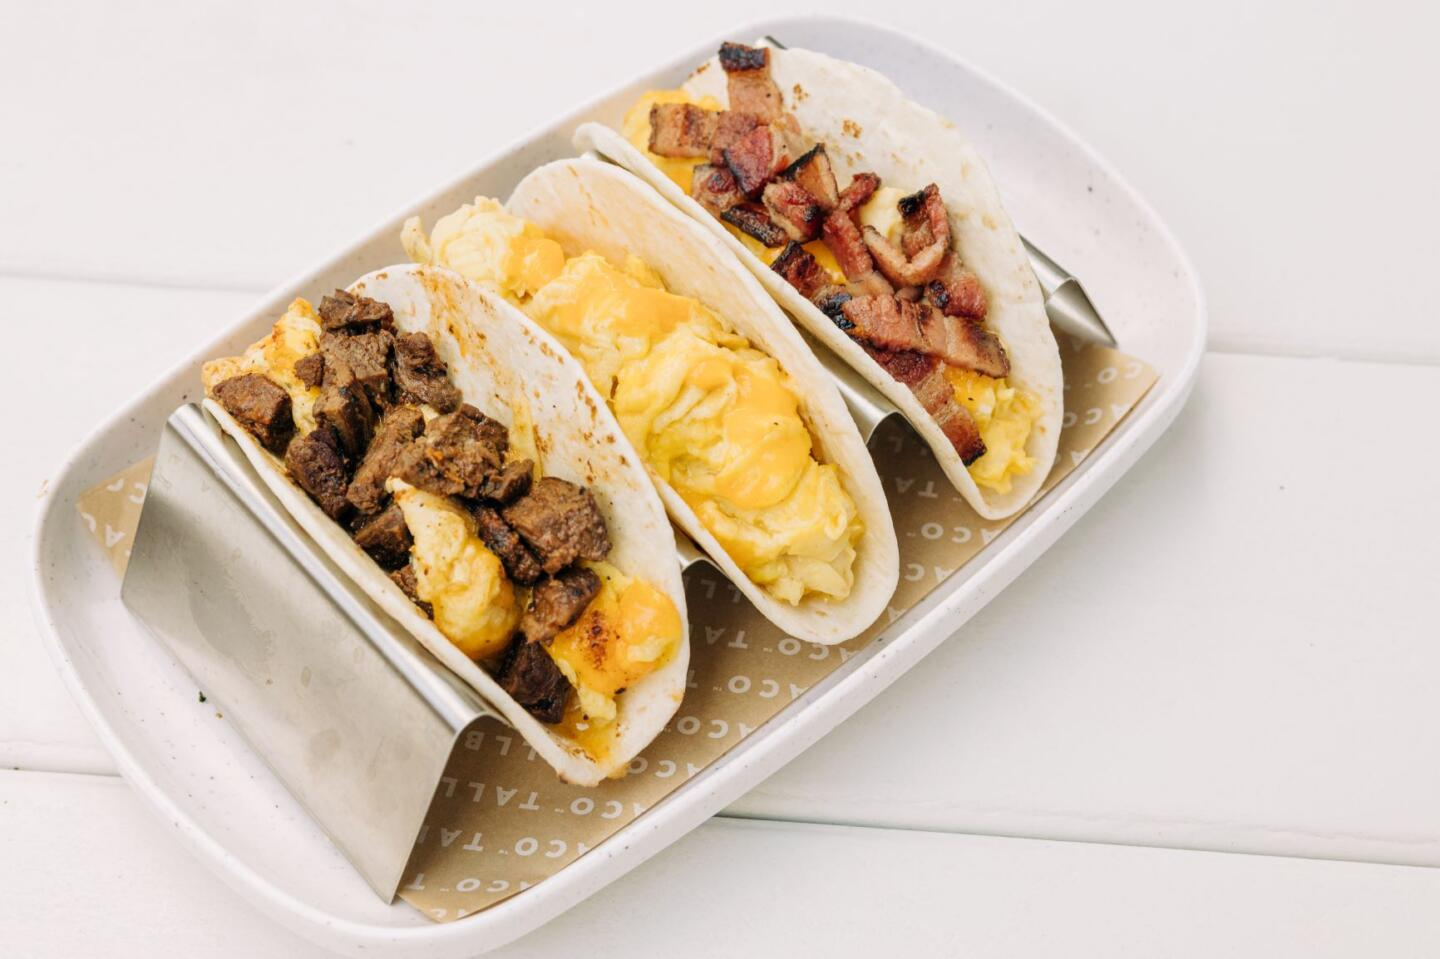 Tallboy Taco breakfast tacos